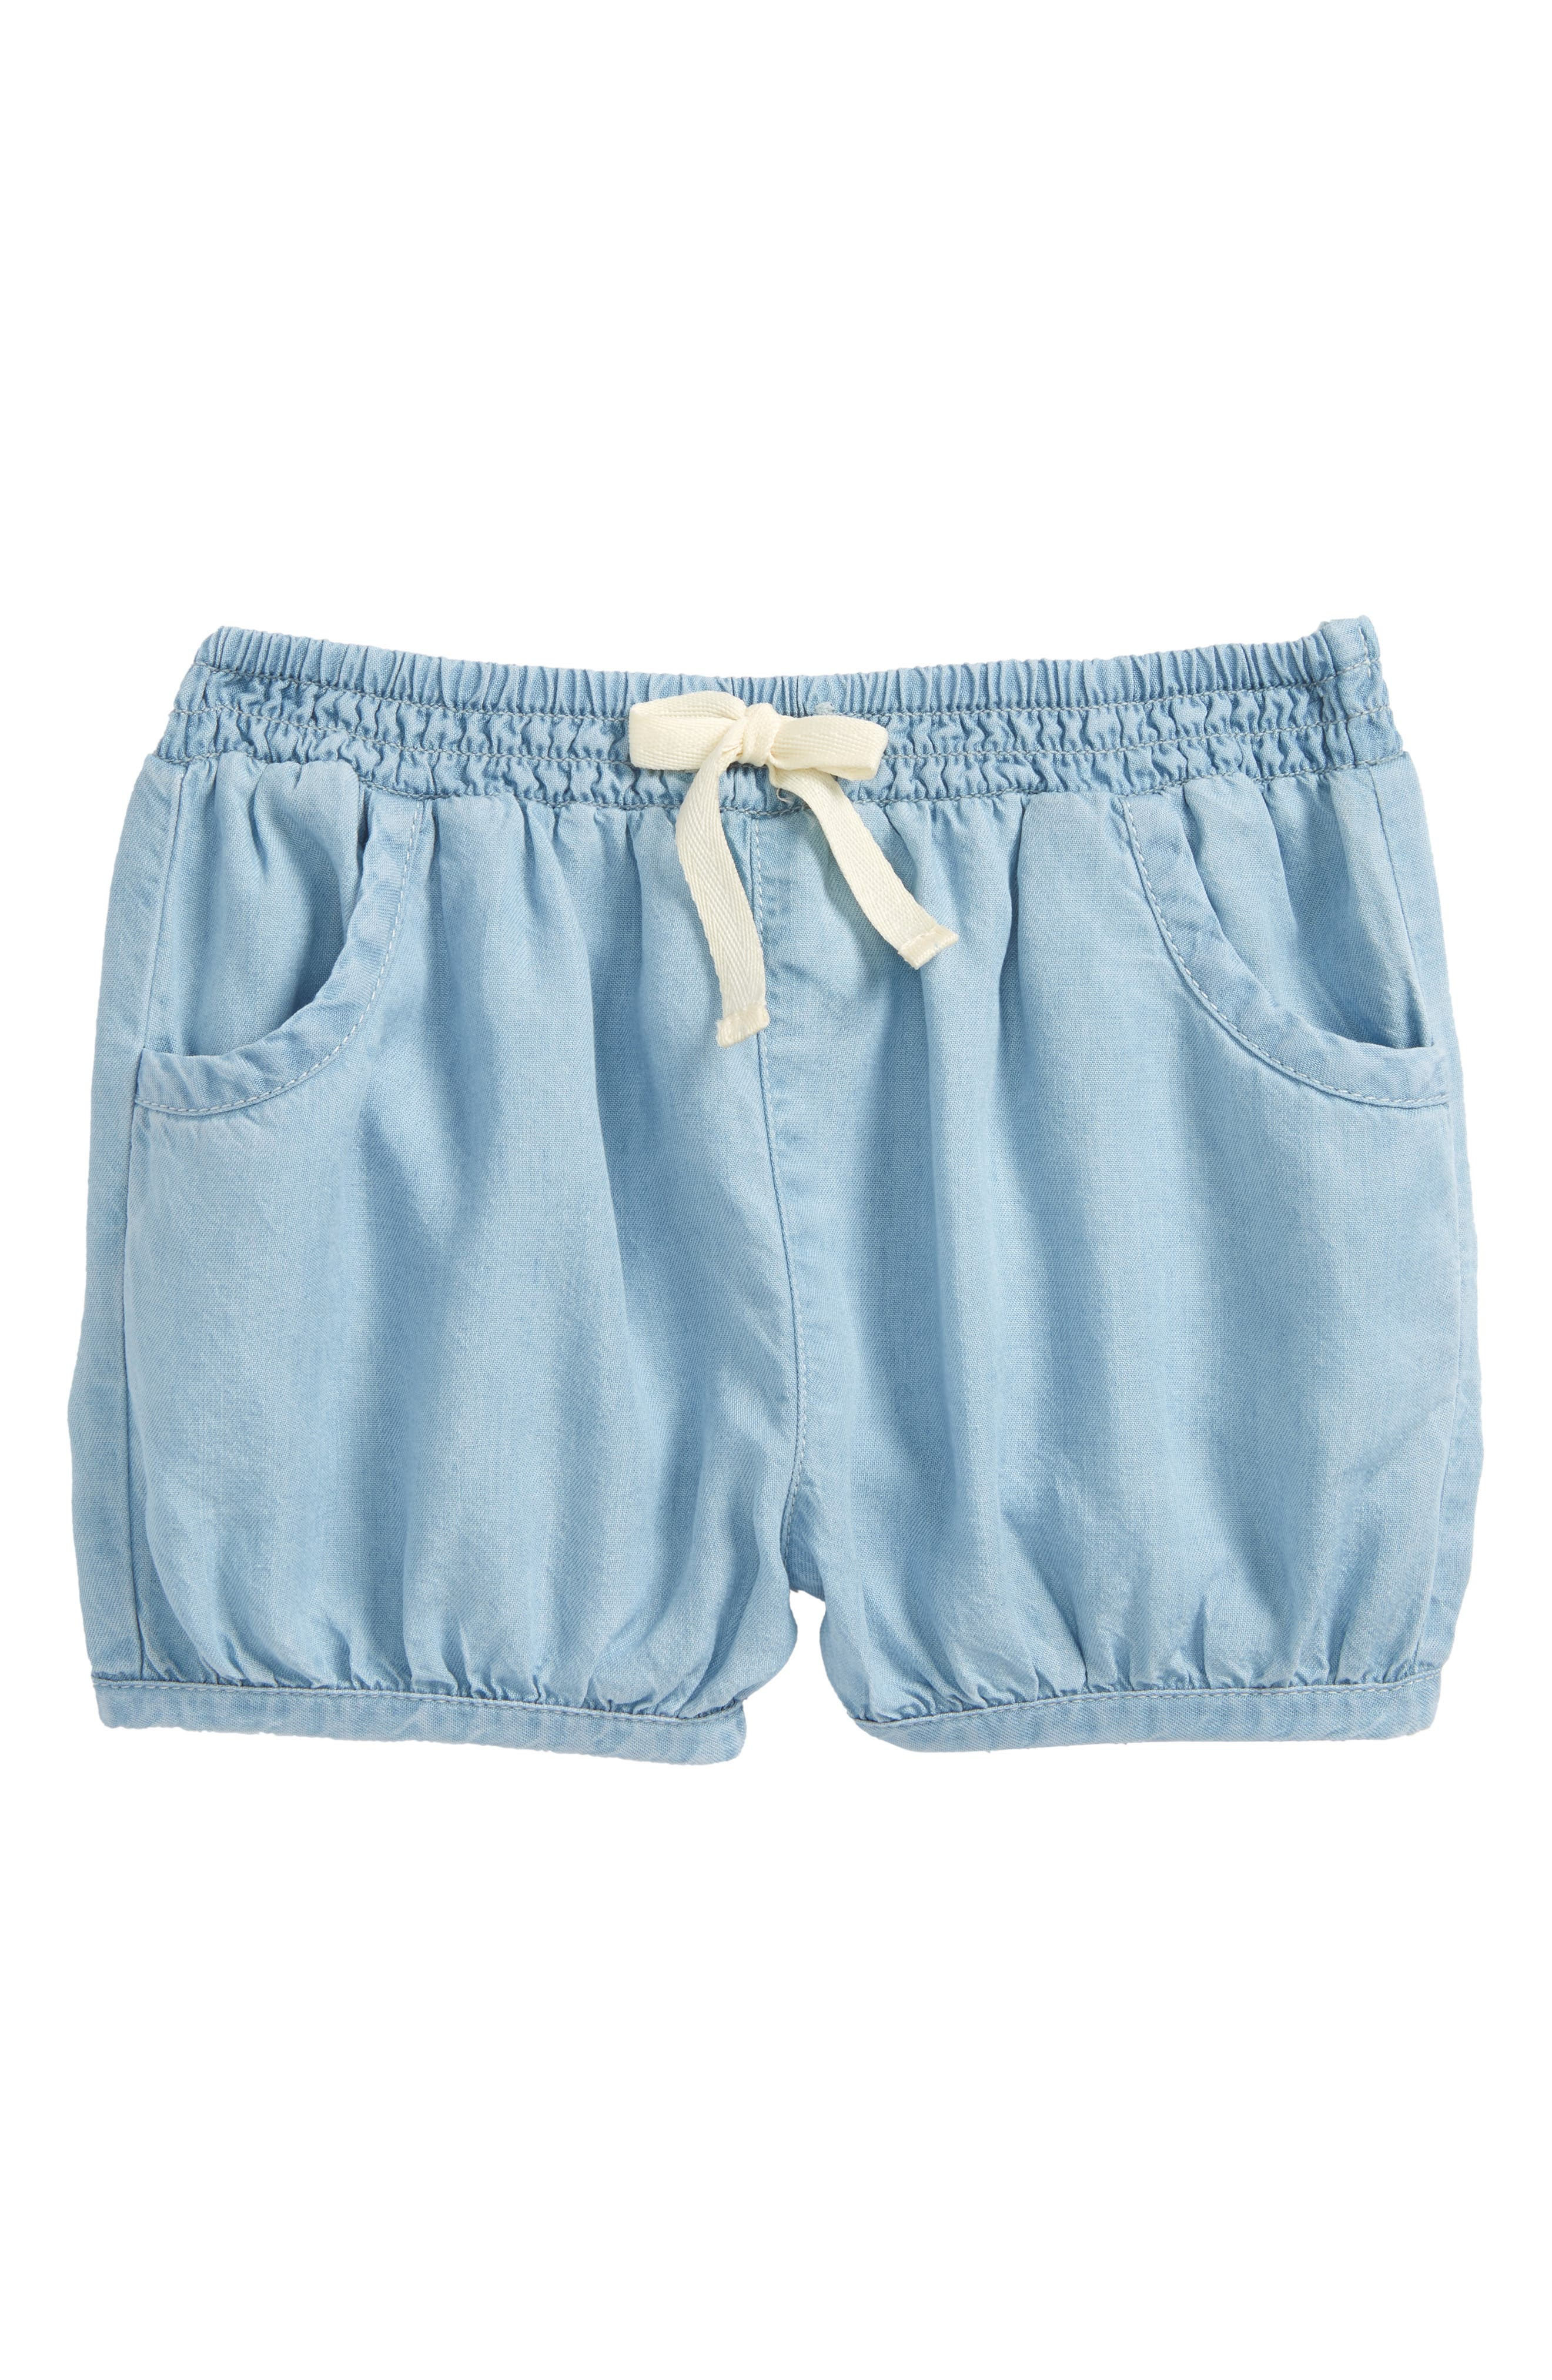 Essential Shorts,                         Main,                         color, 450